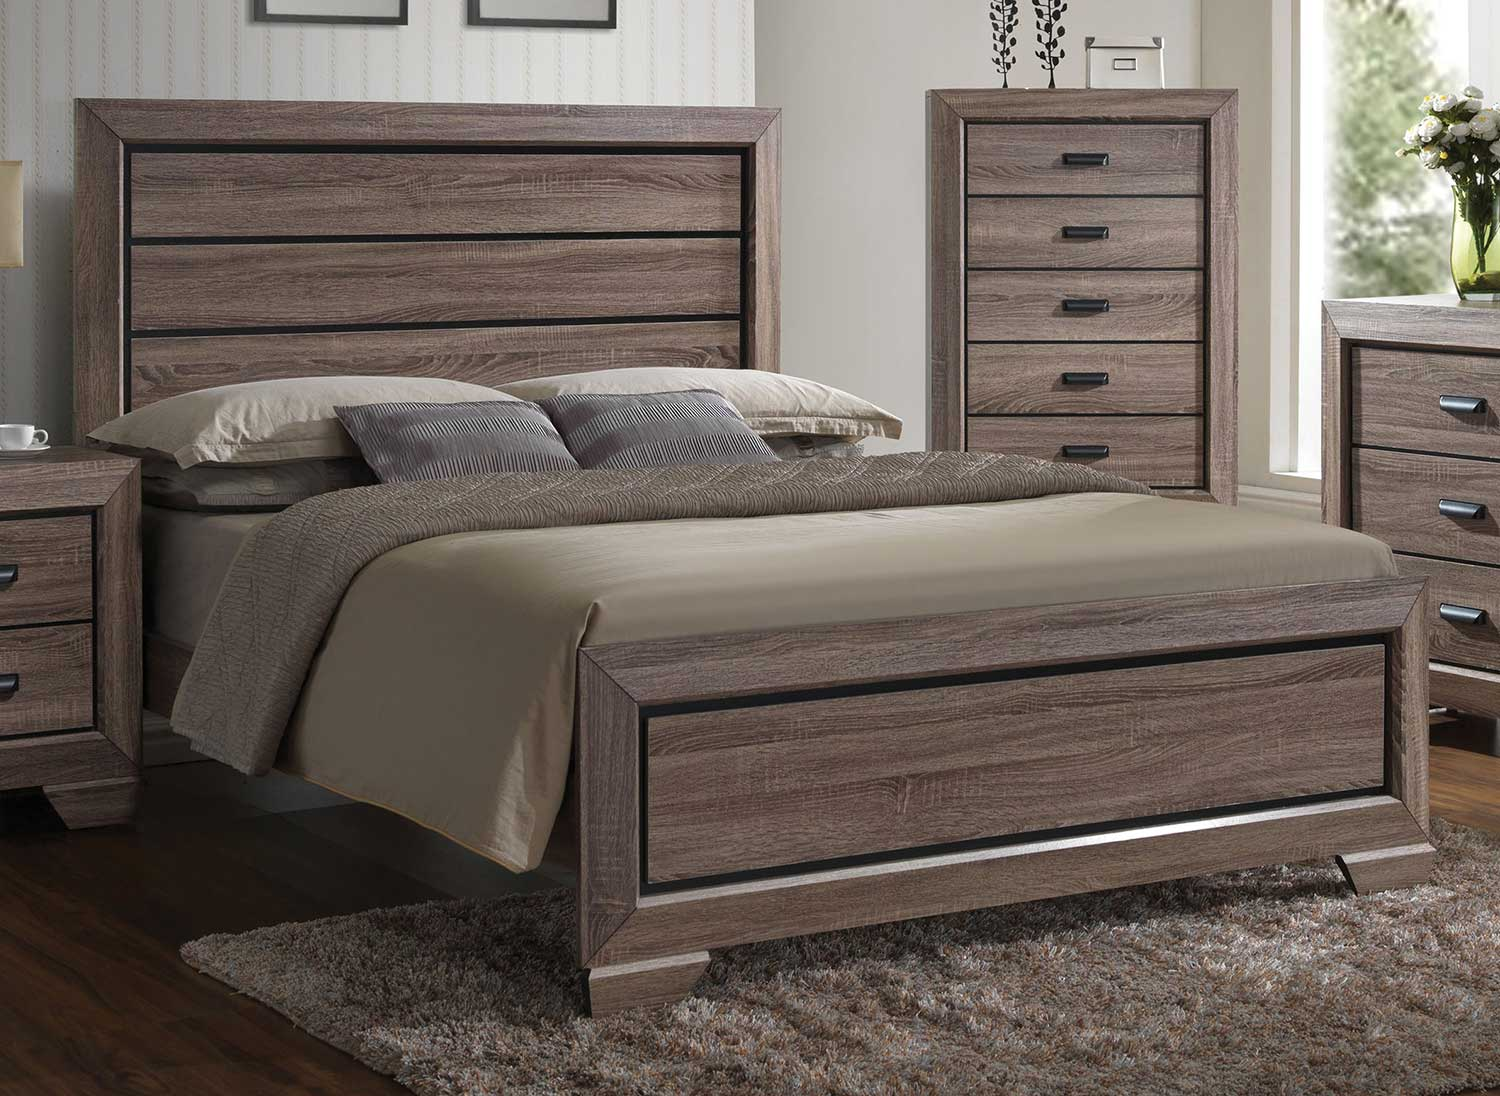 Acme Lyndon Bed - Weathered Gray Grain